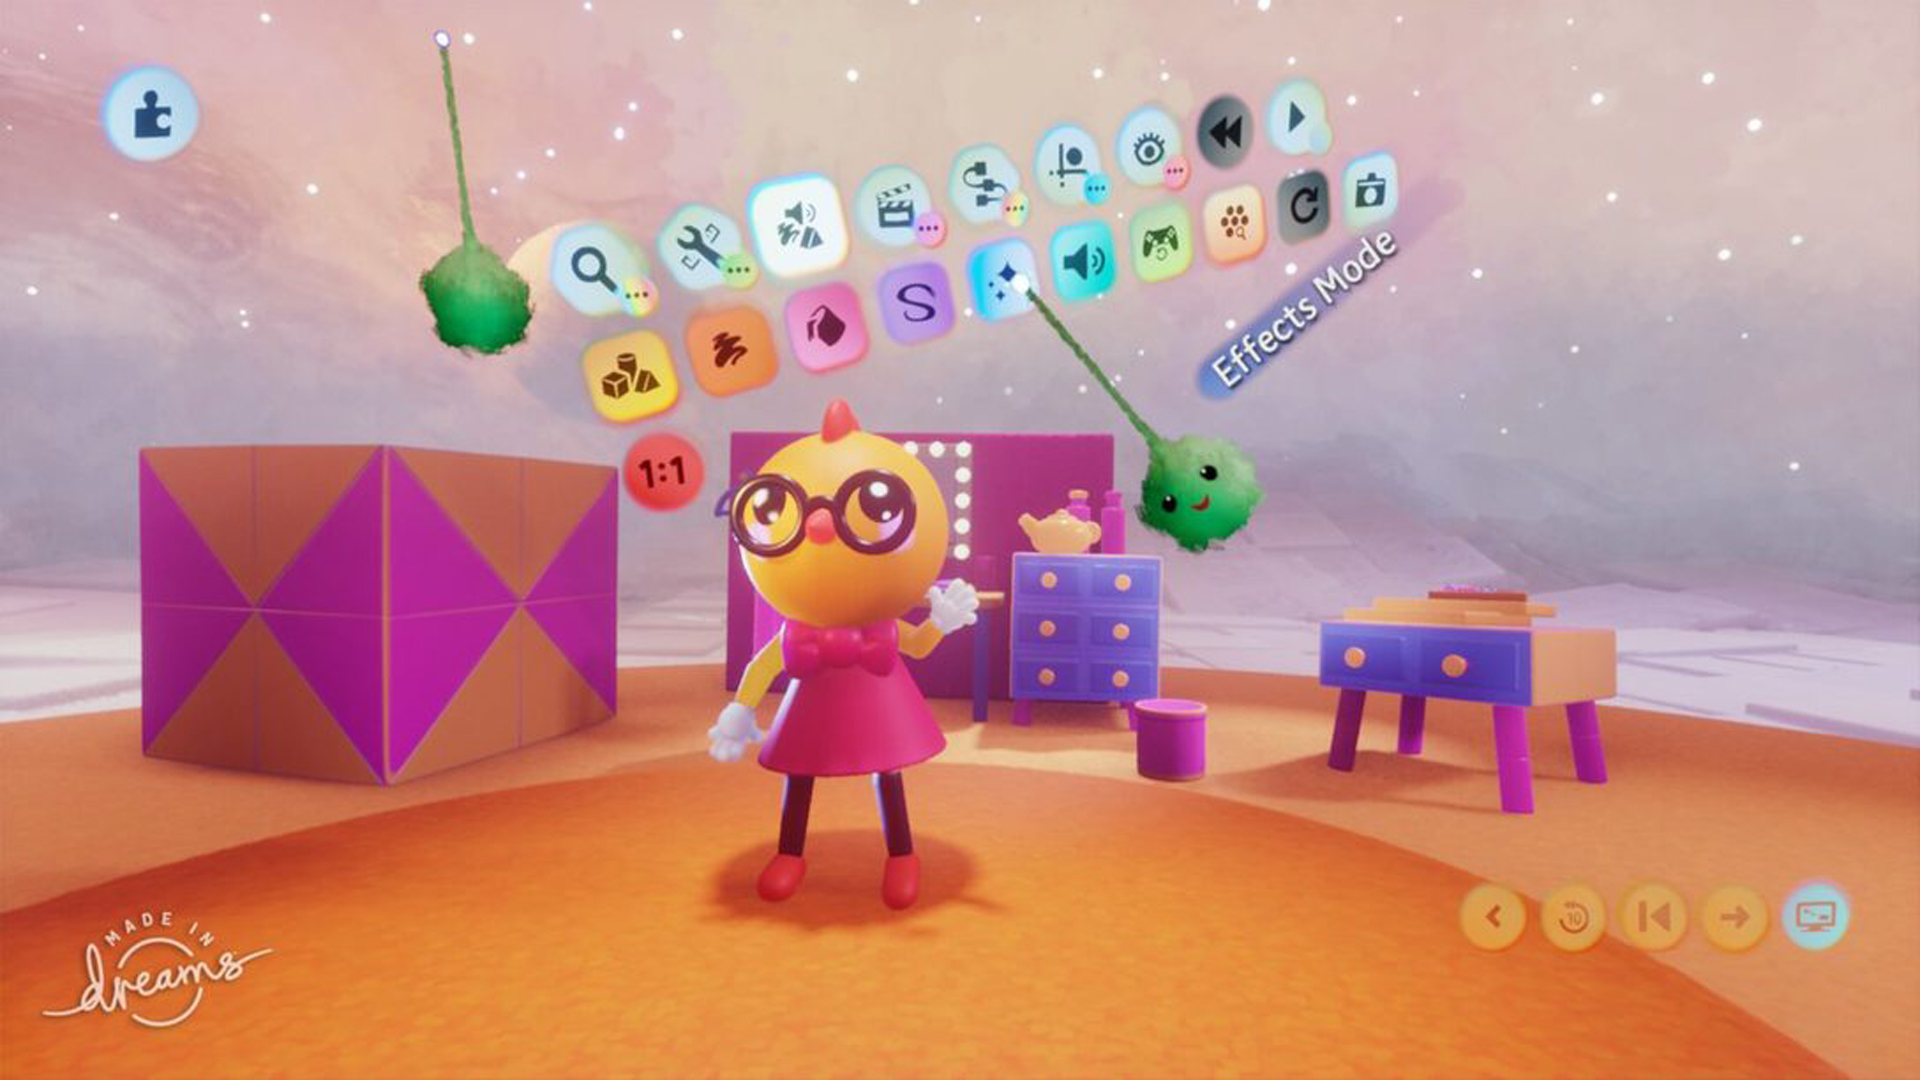 'Dreams' Launches into Early Access on PS4, PSVR Support Still Pending – Road to VR